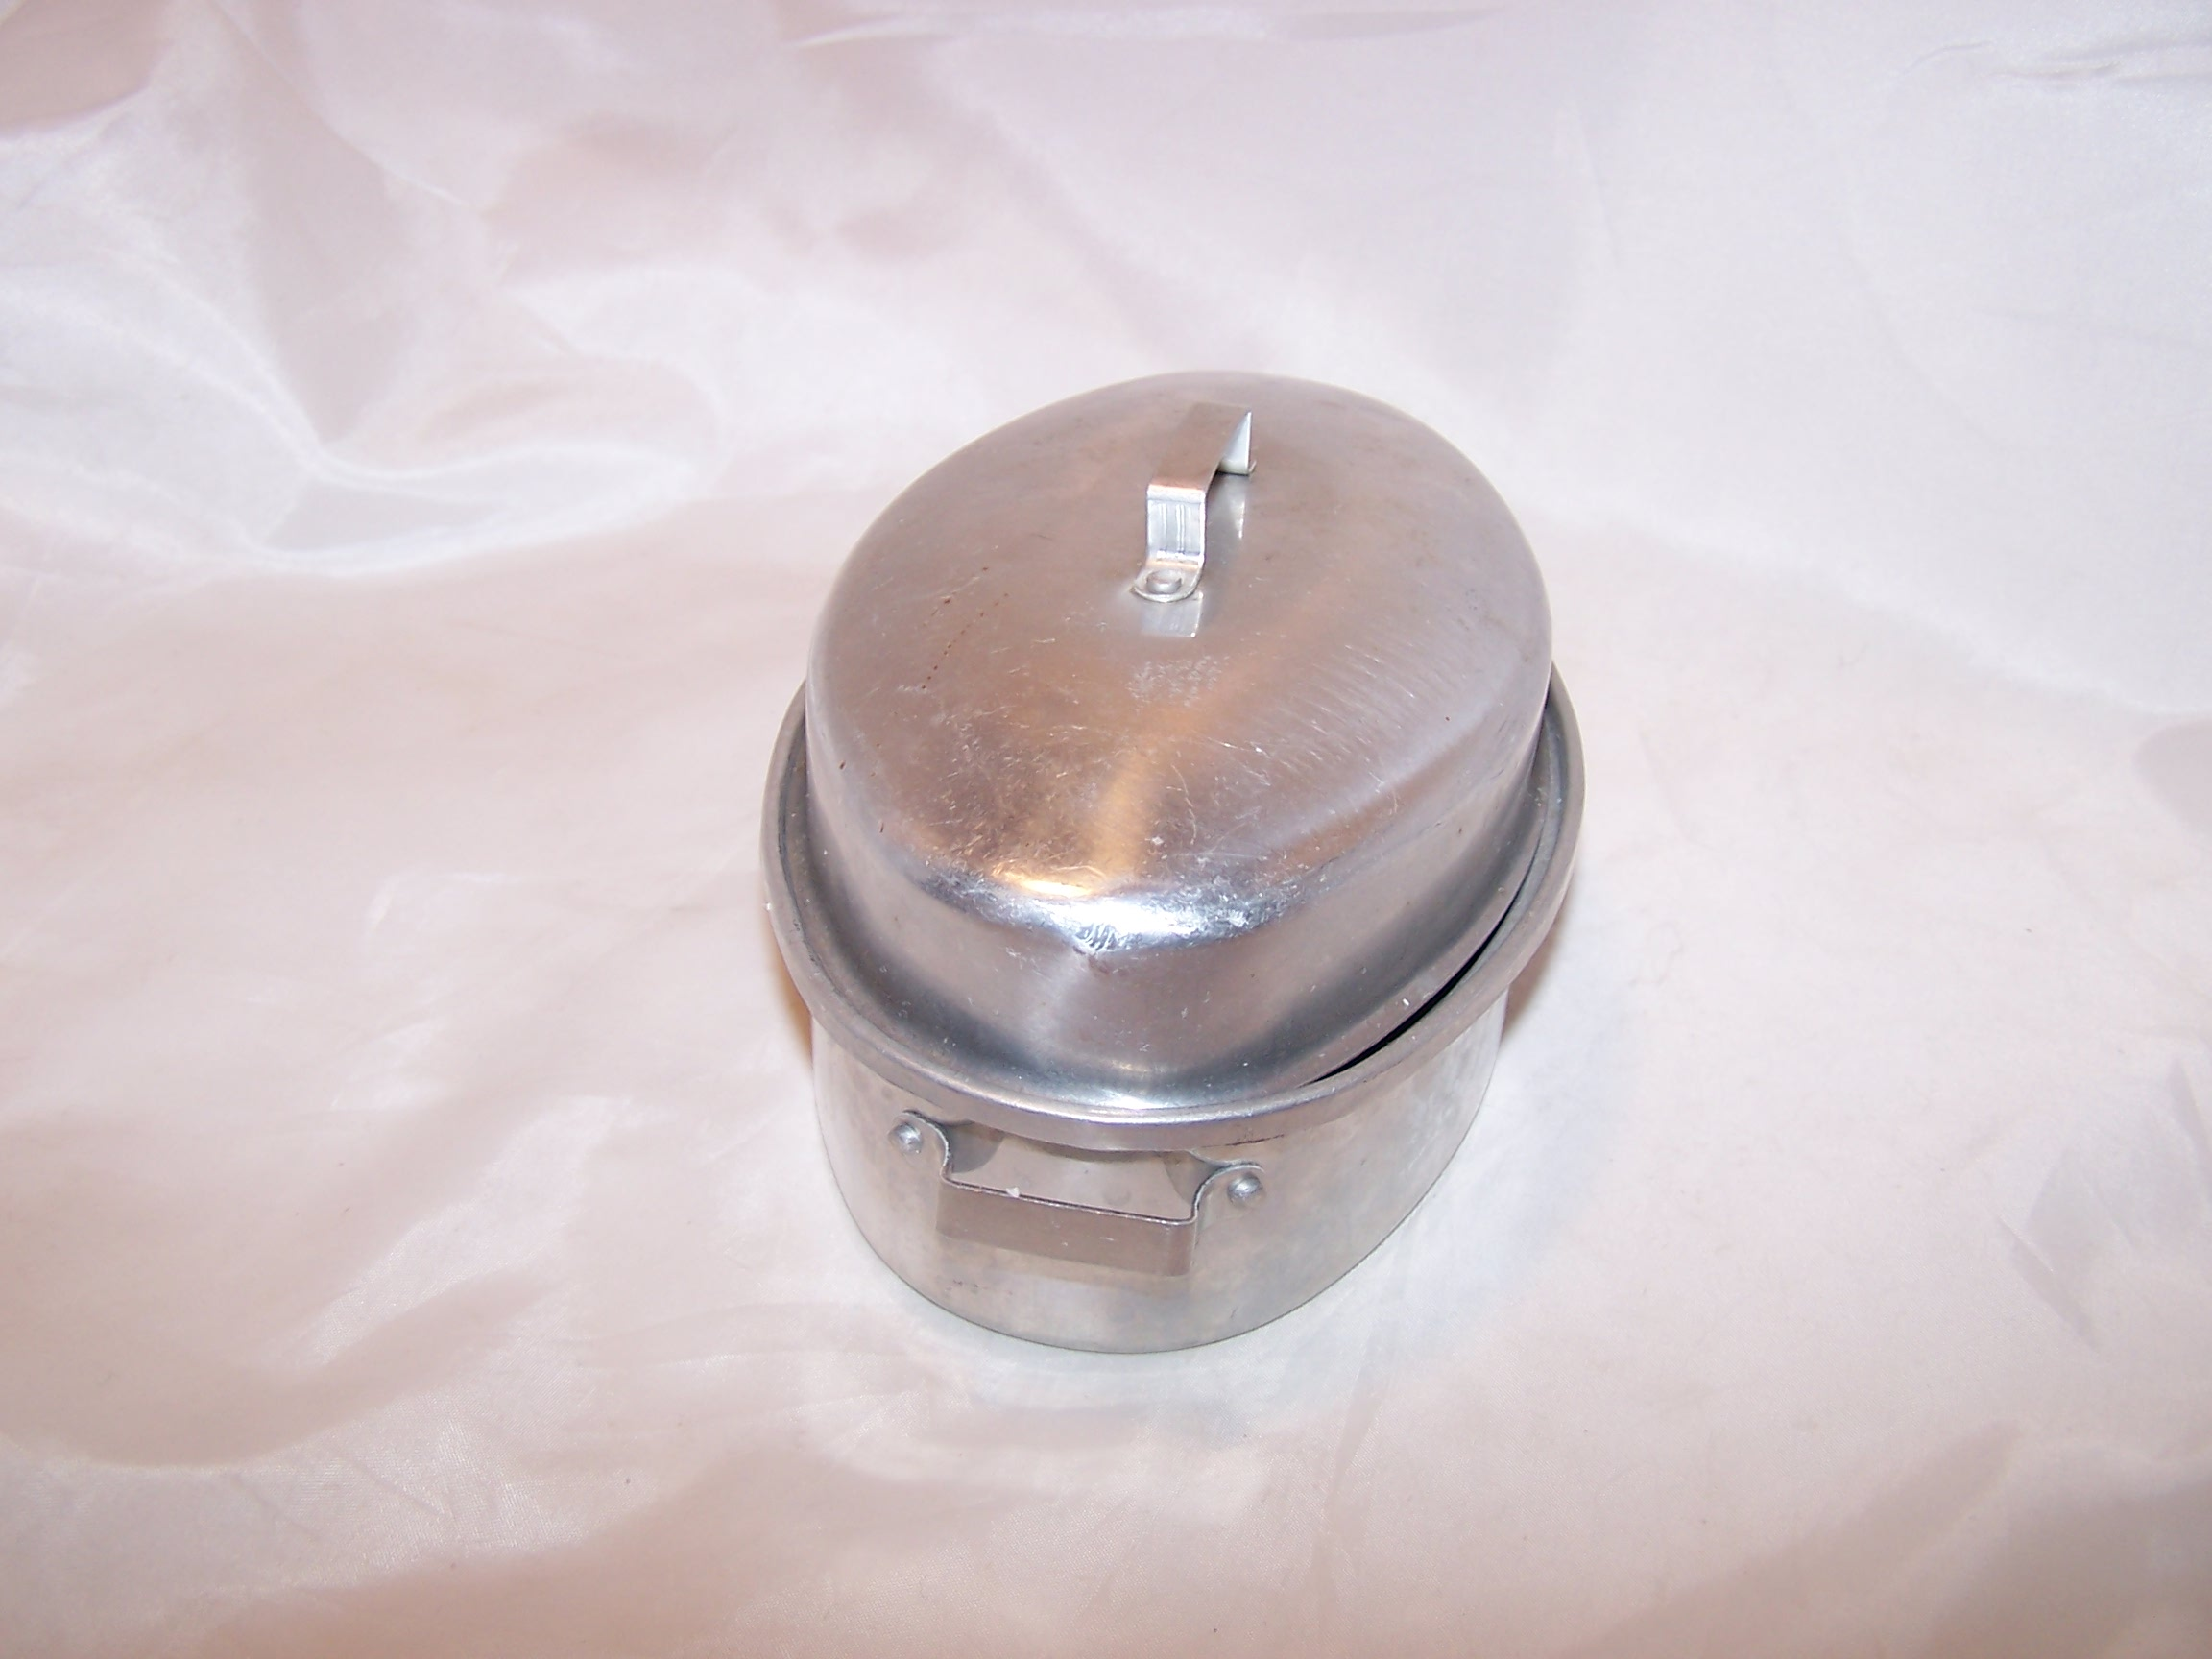 Image 1 of Toy Roaster w Lid, Aluminum, Vintage Childs Toy